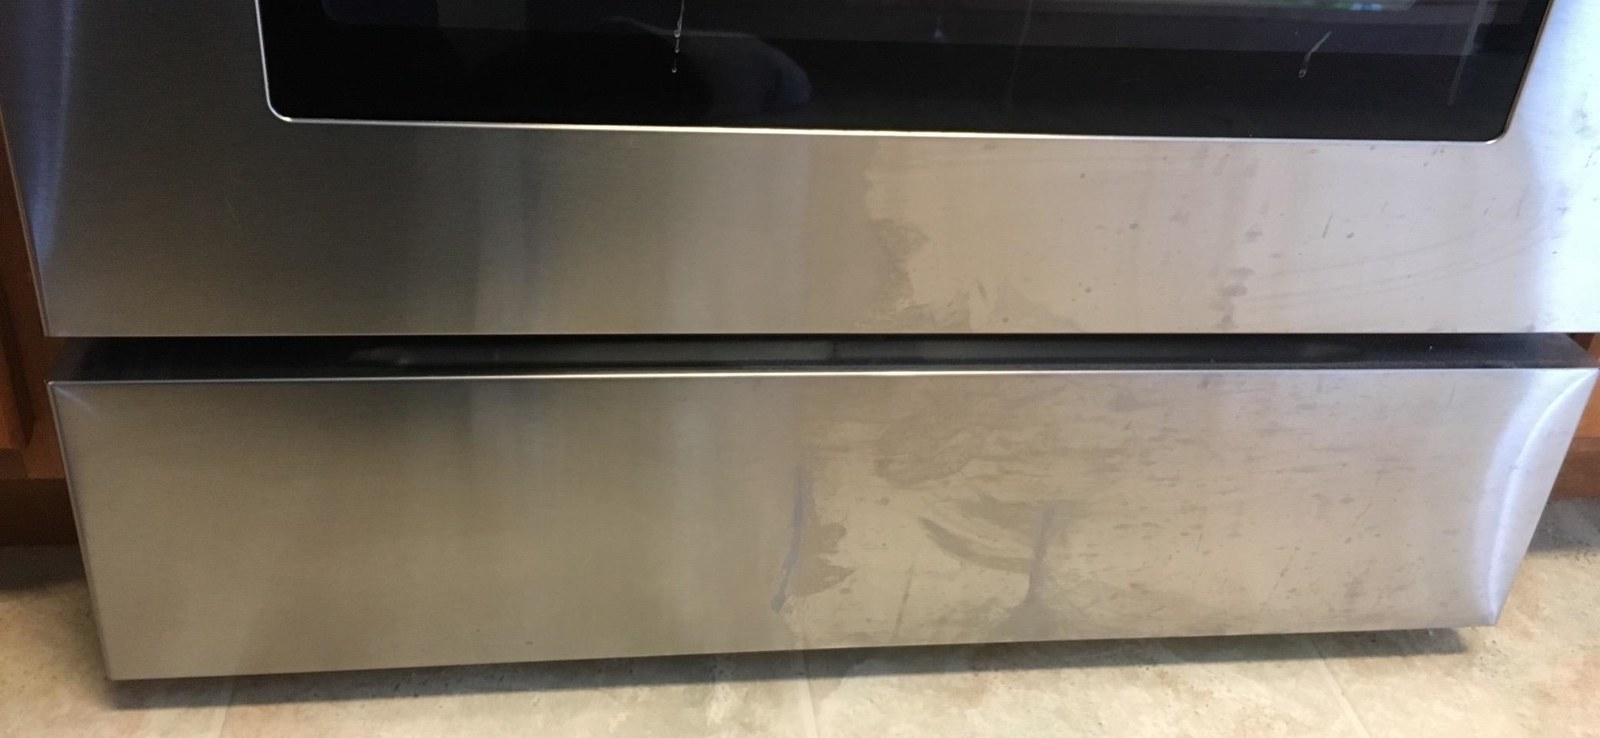 Reviewer photo showing a stainless steel oven partially polished by the cleaner to demonstrate how well it works. The non-polished side is covered with stains